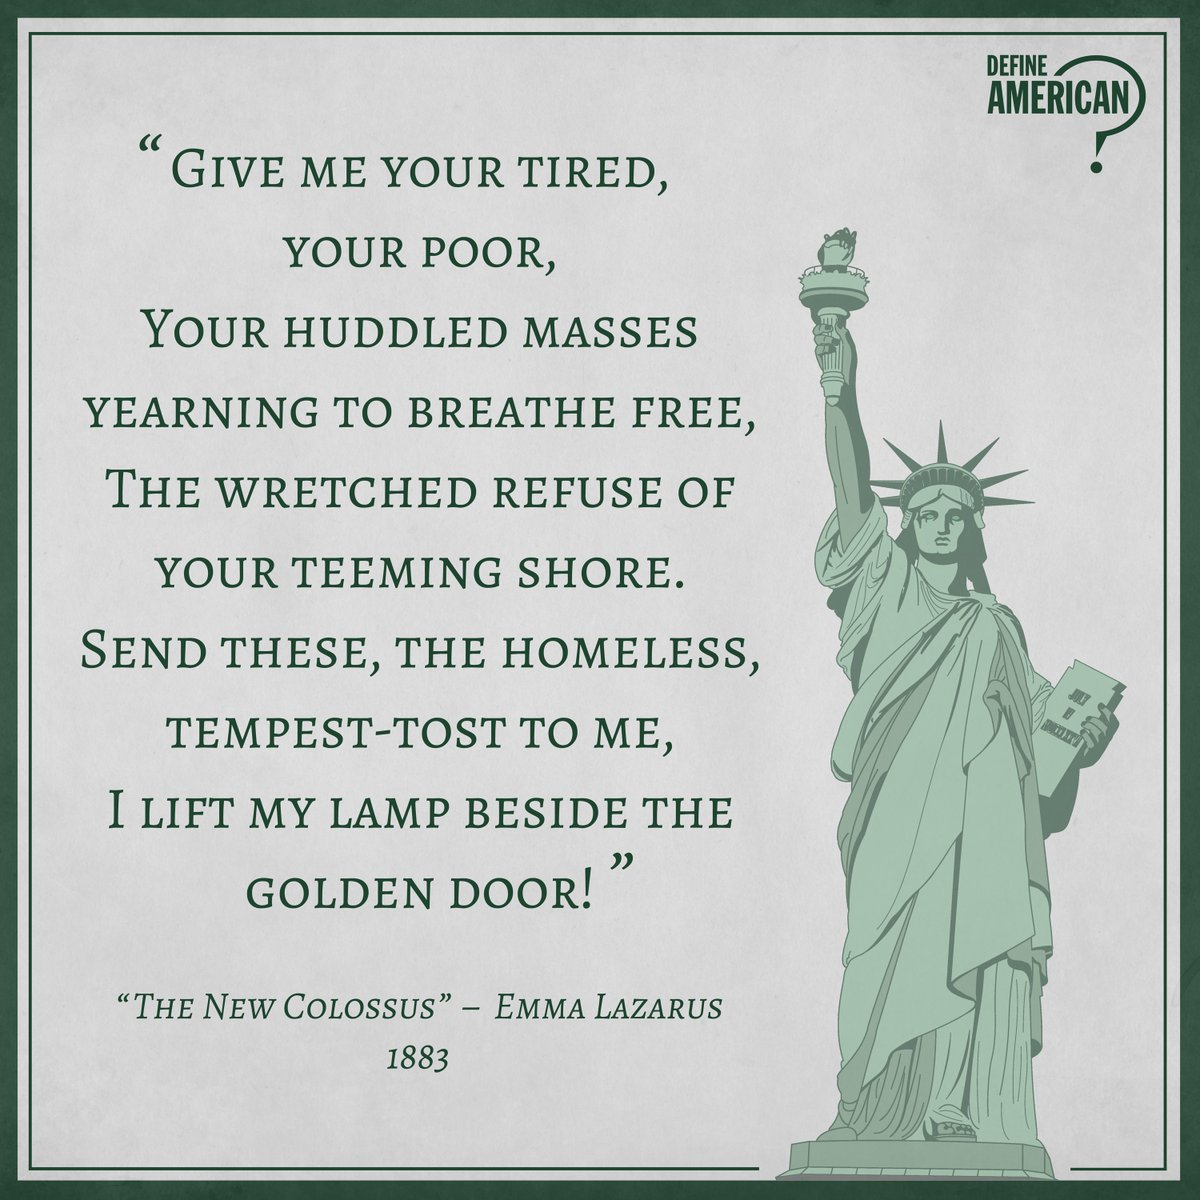 The New Colossus by Emma Lazarus